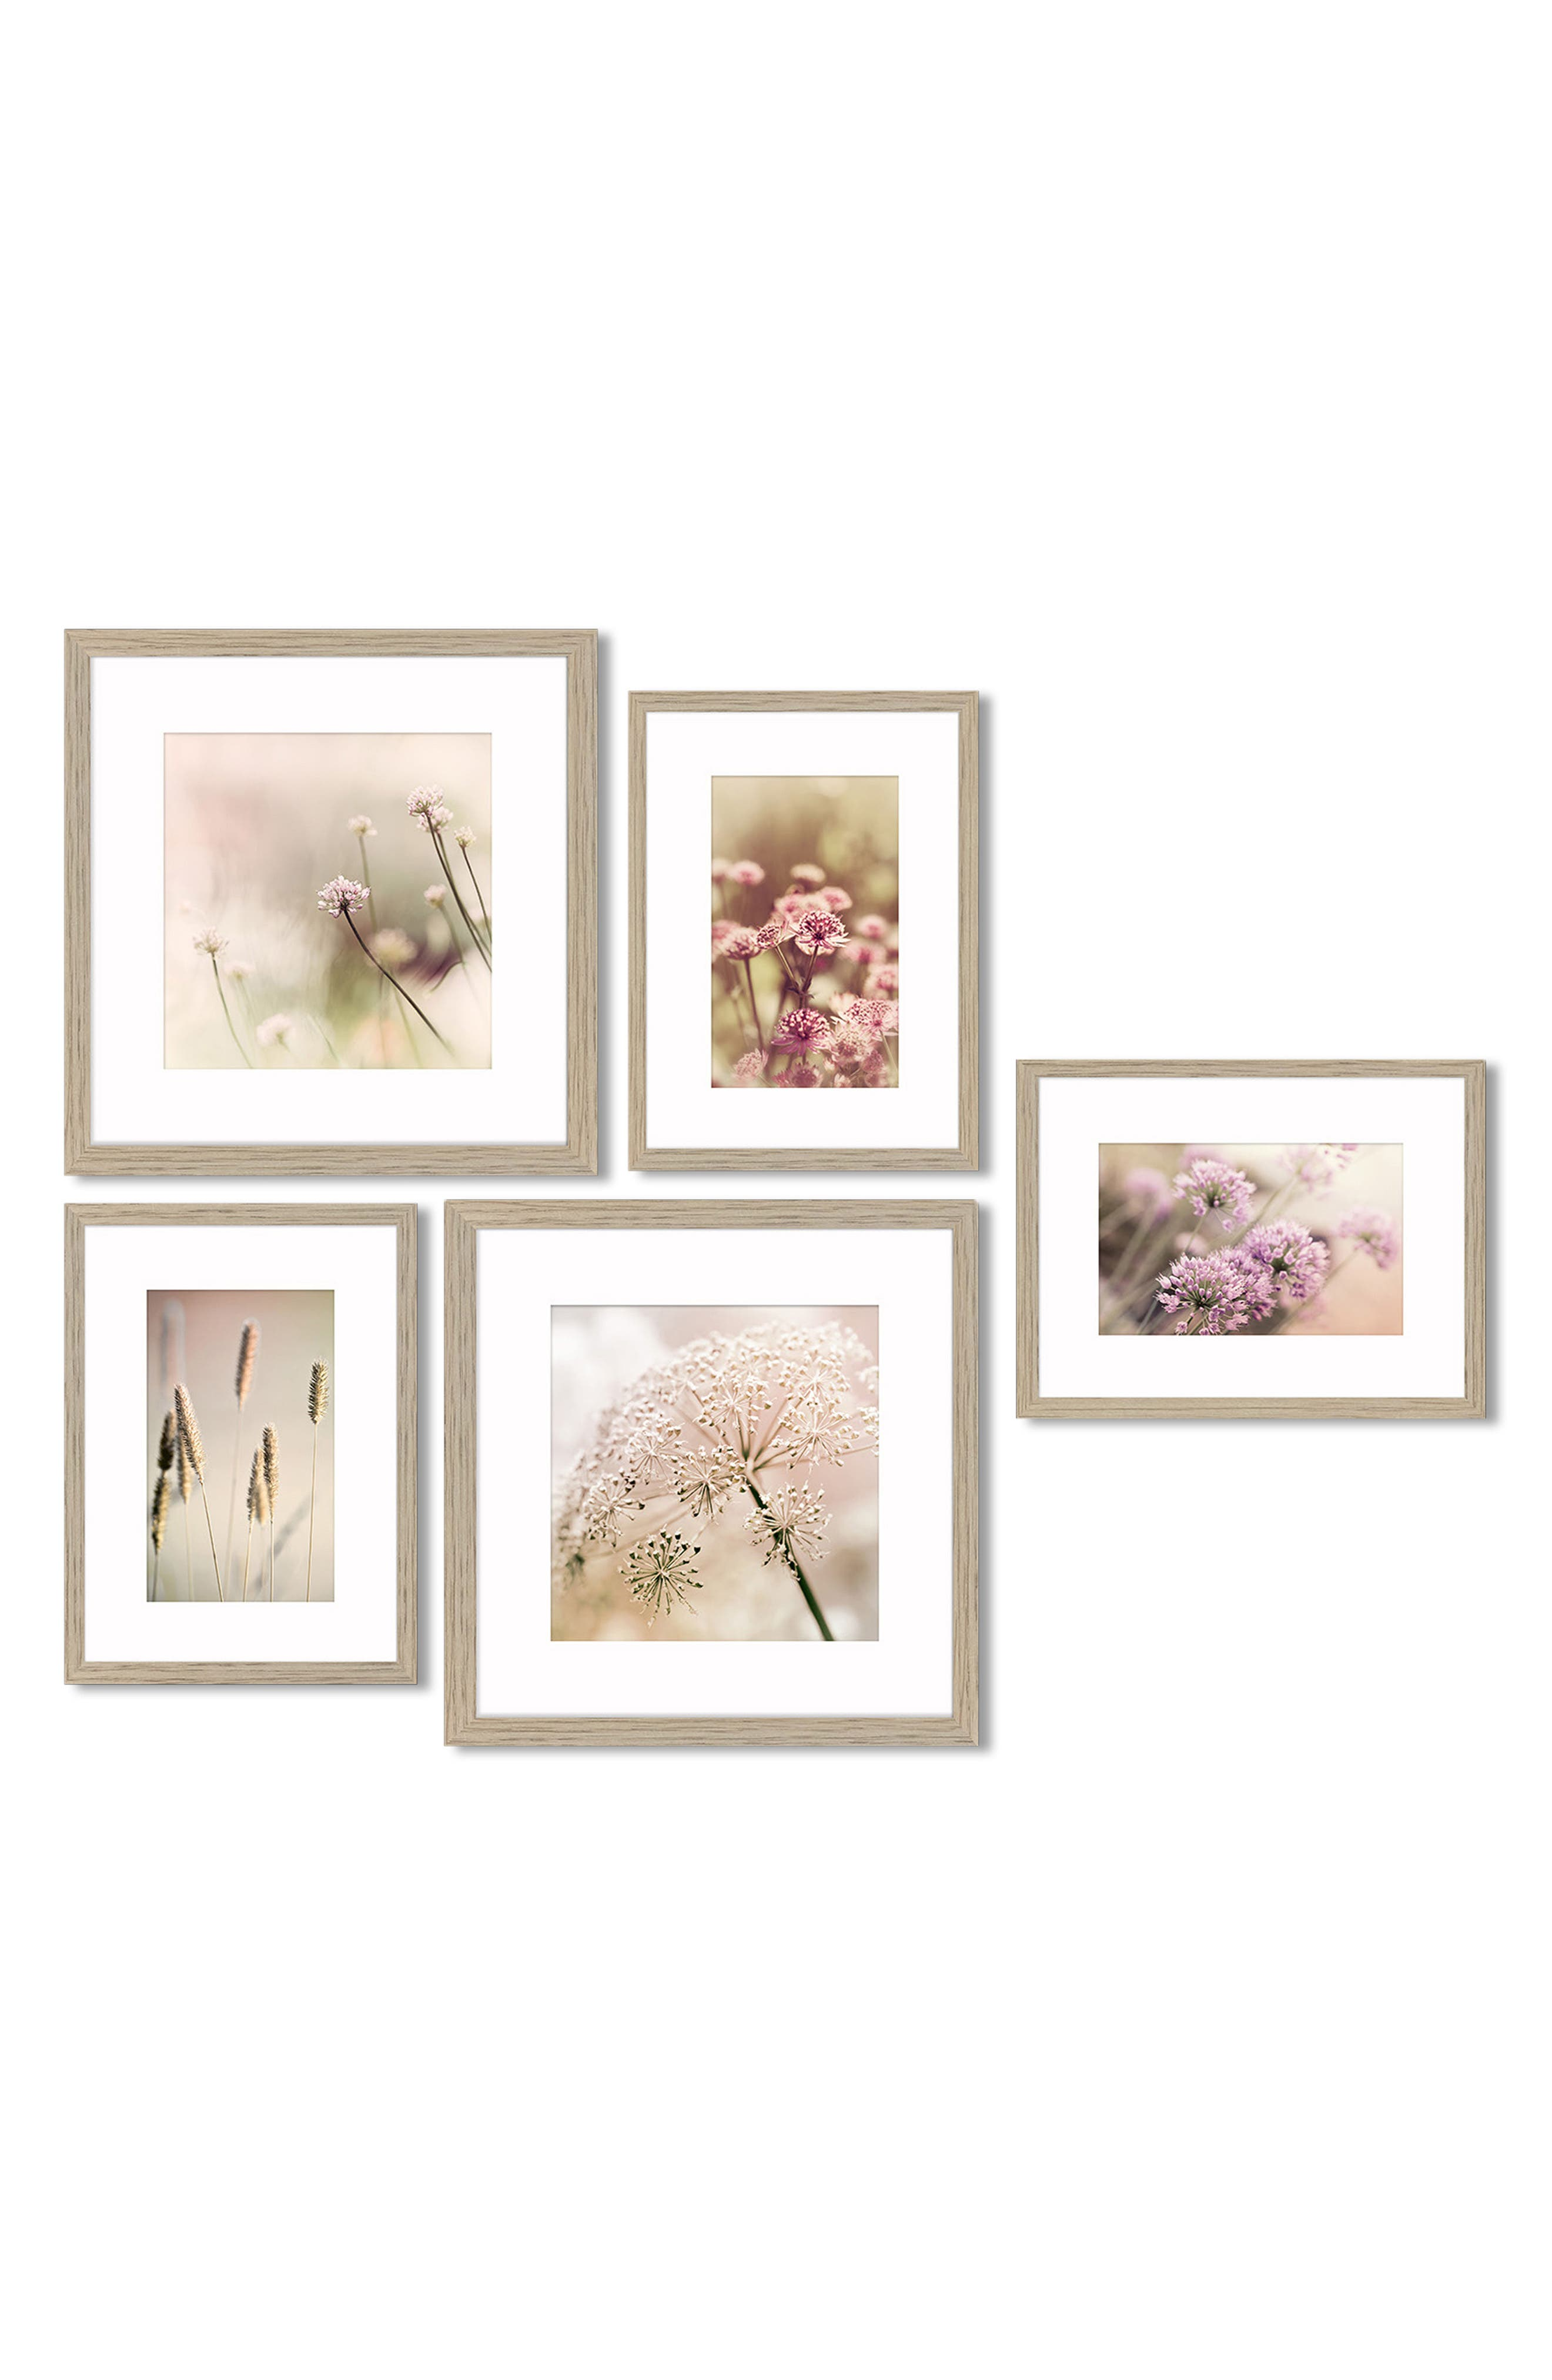 5-Piece Framed Wall Art Gallery,                             Main thumbnail 1, color,                             650